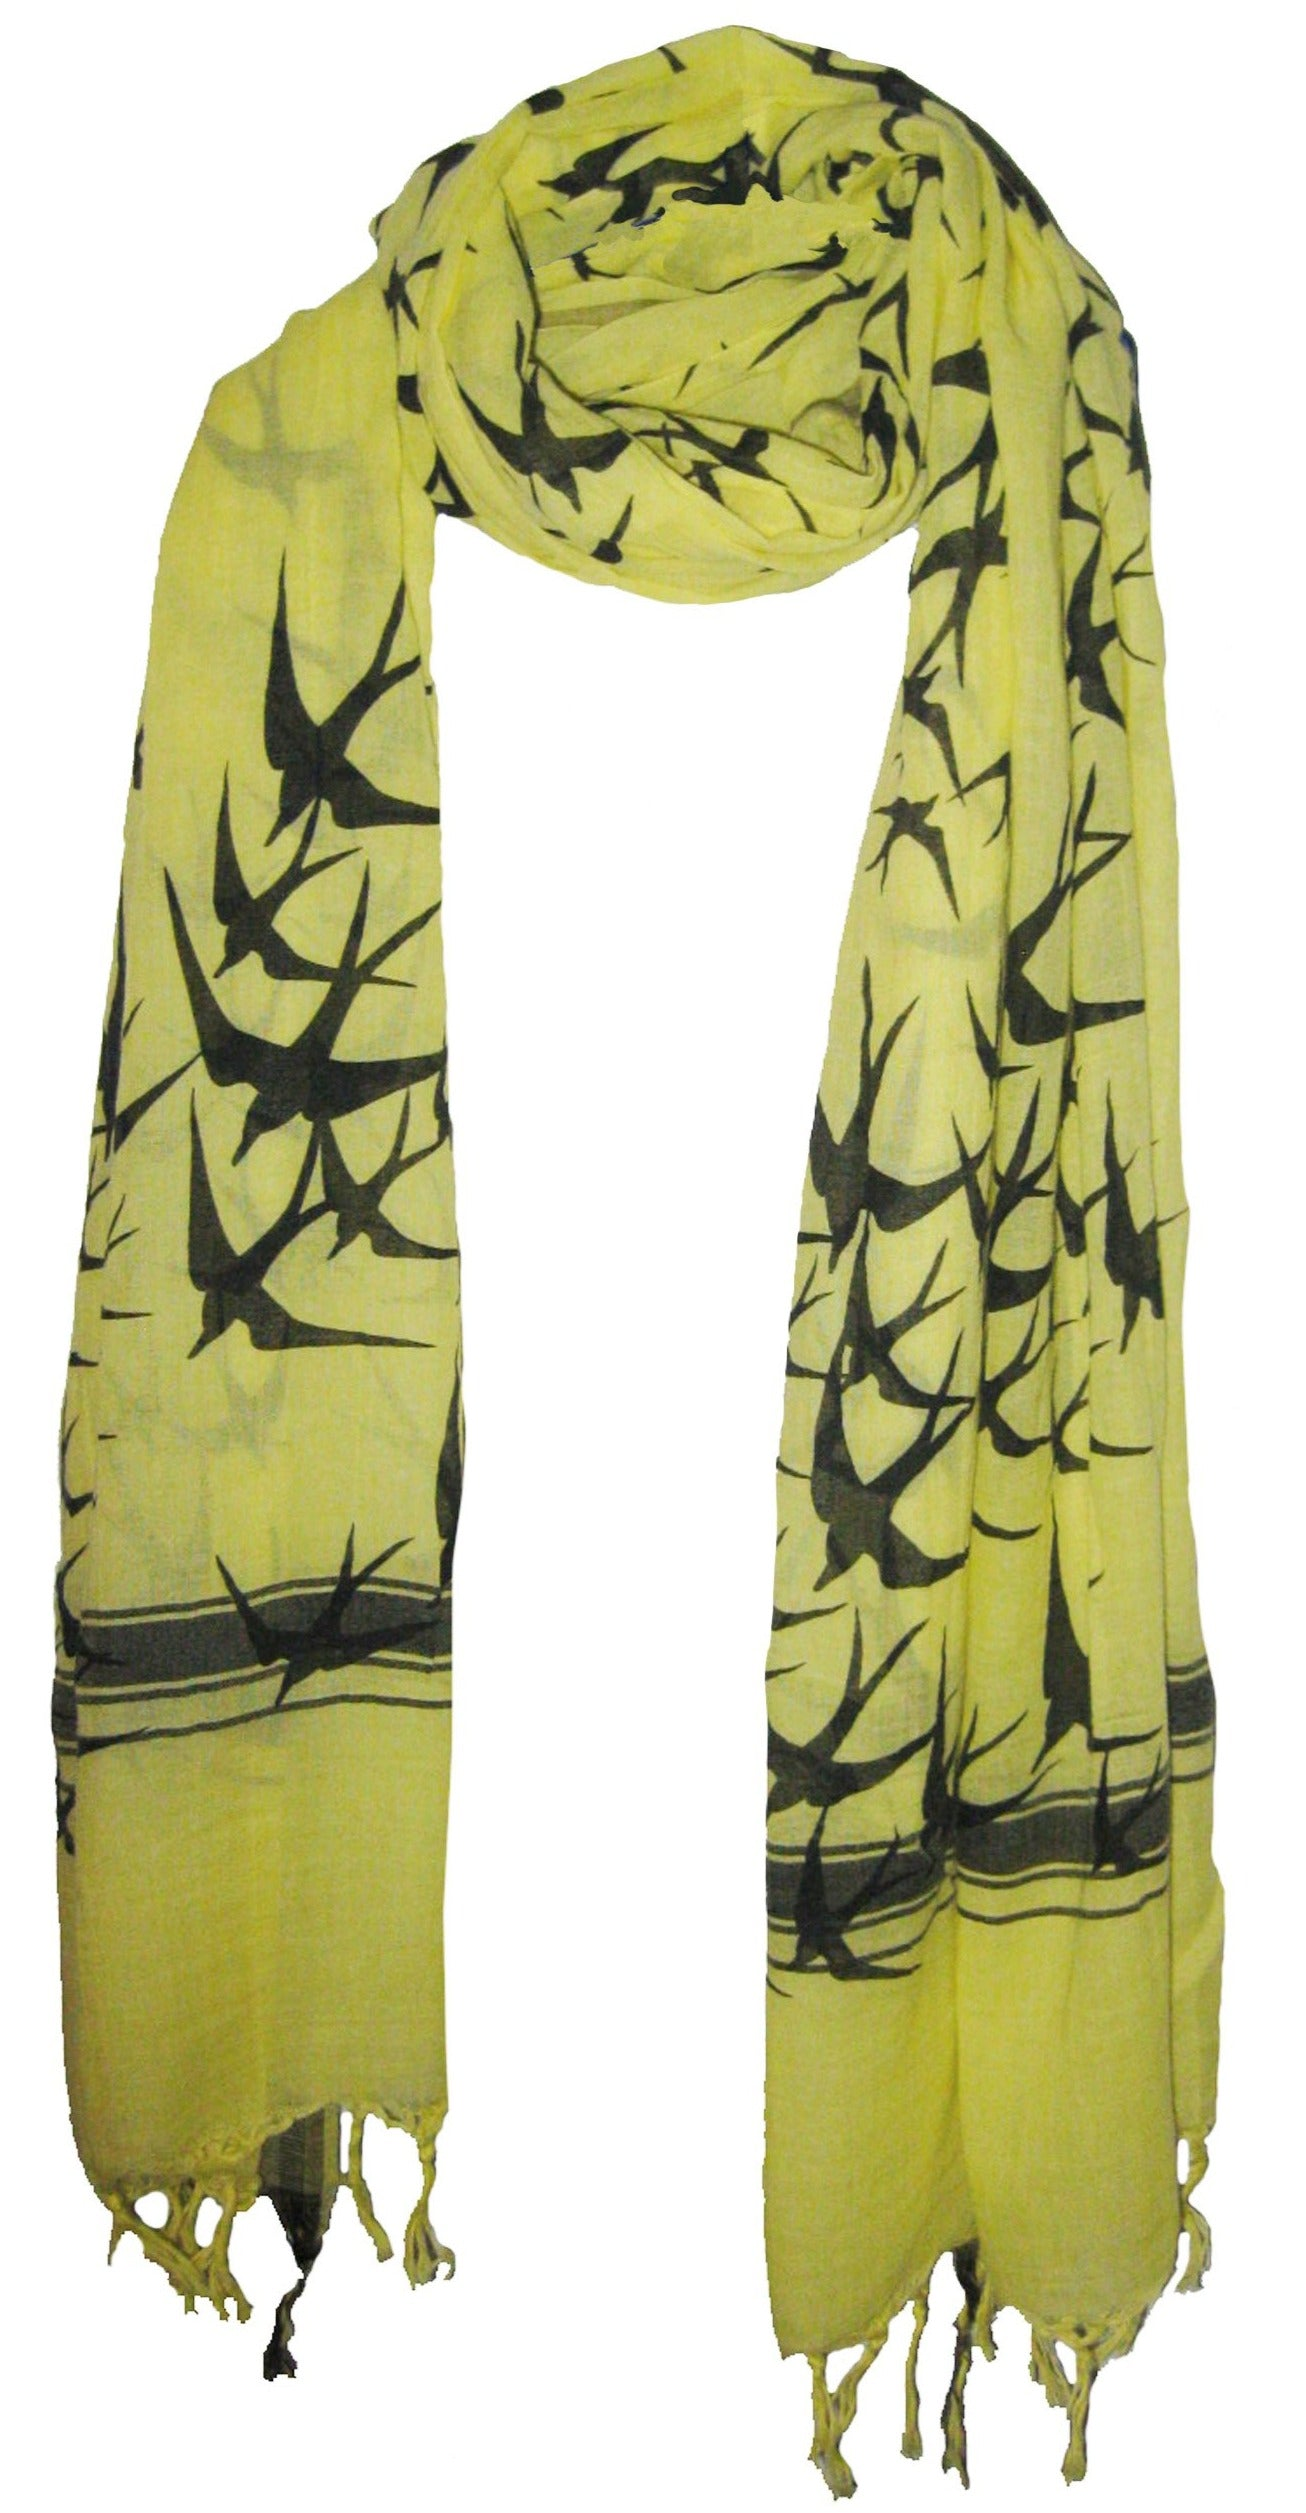 Freedom Bright Yellow  - Fine Cotton Voile Scarf